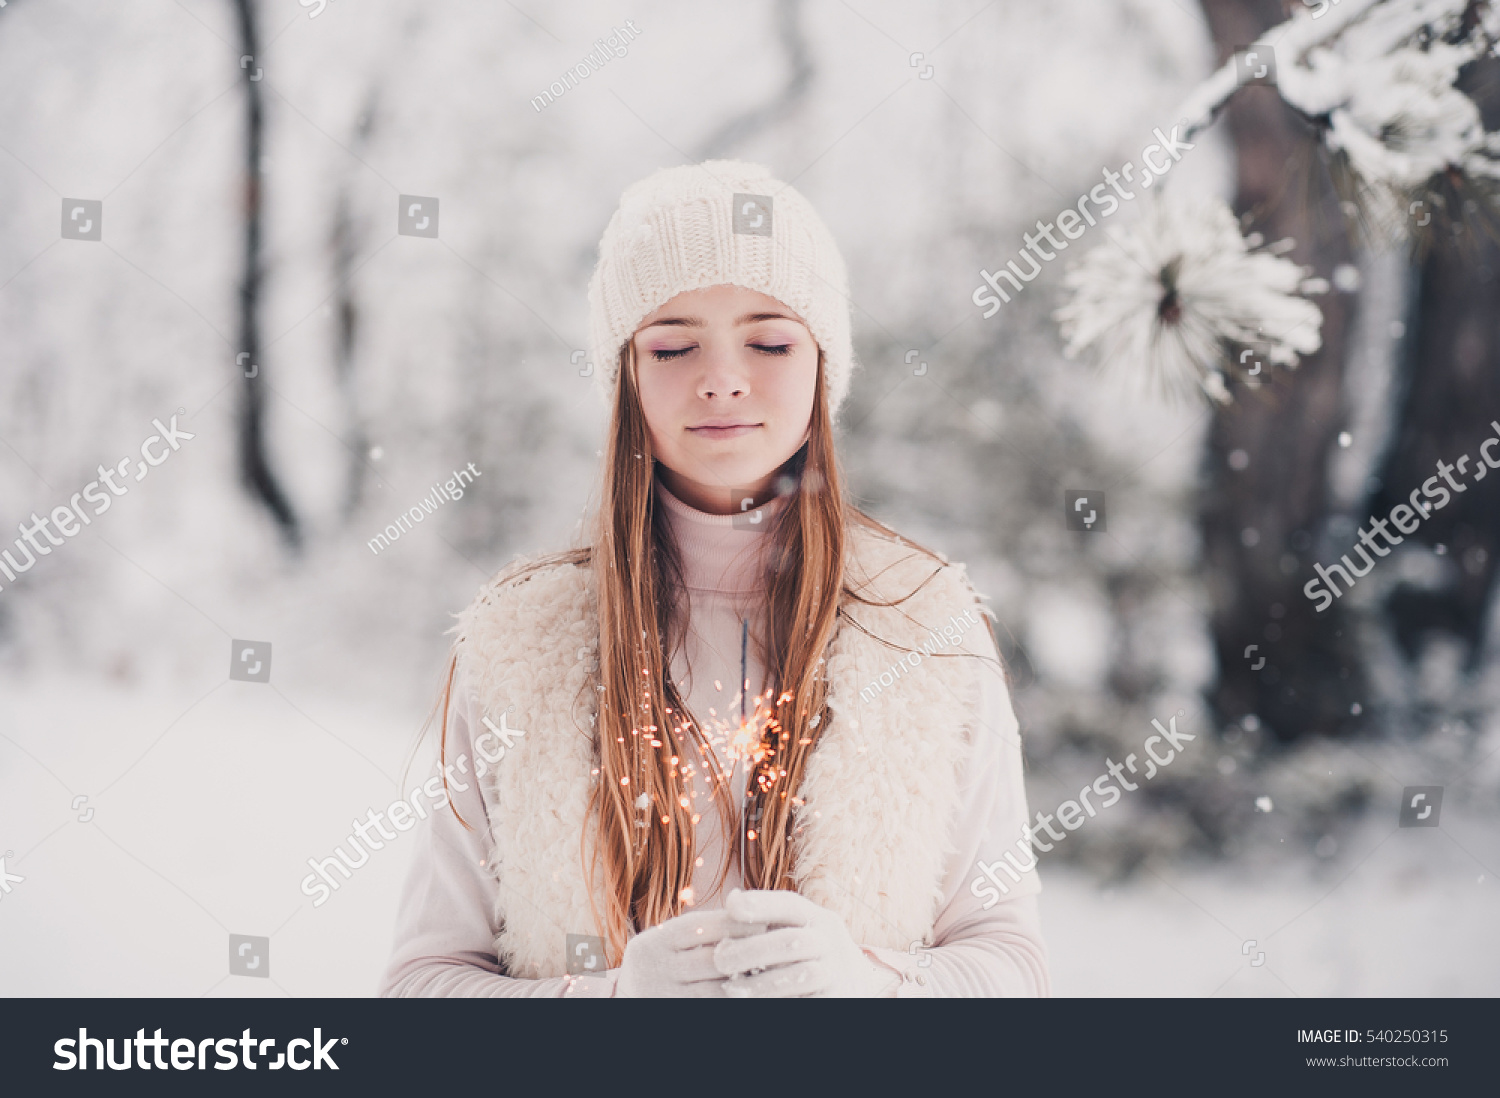 Smiling Teen Girl 14 16 Year Old Wearing Winter Knitted Clothes Holding Sparkler Outdoors Over